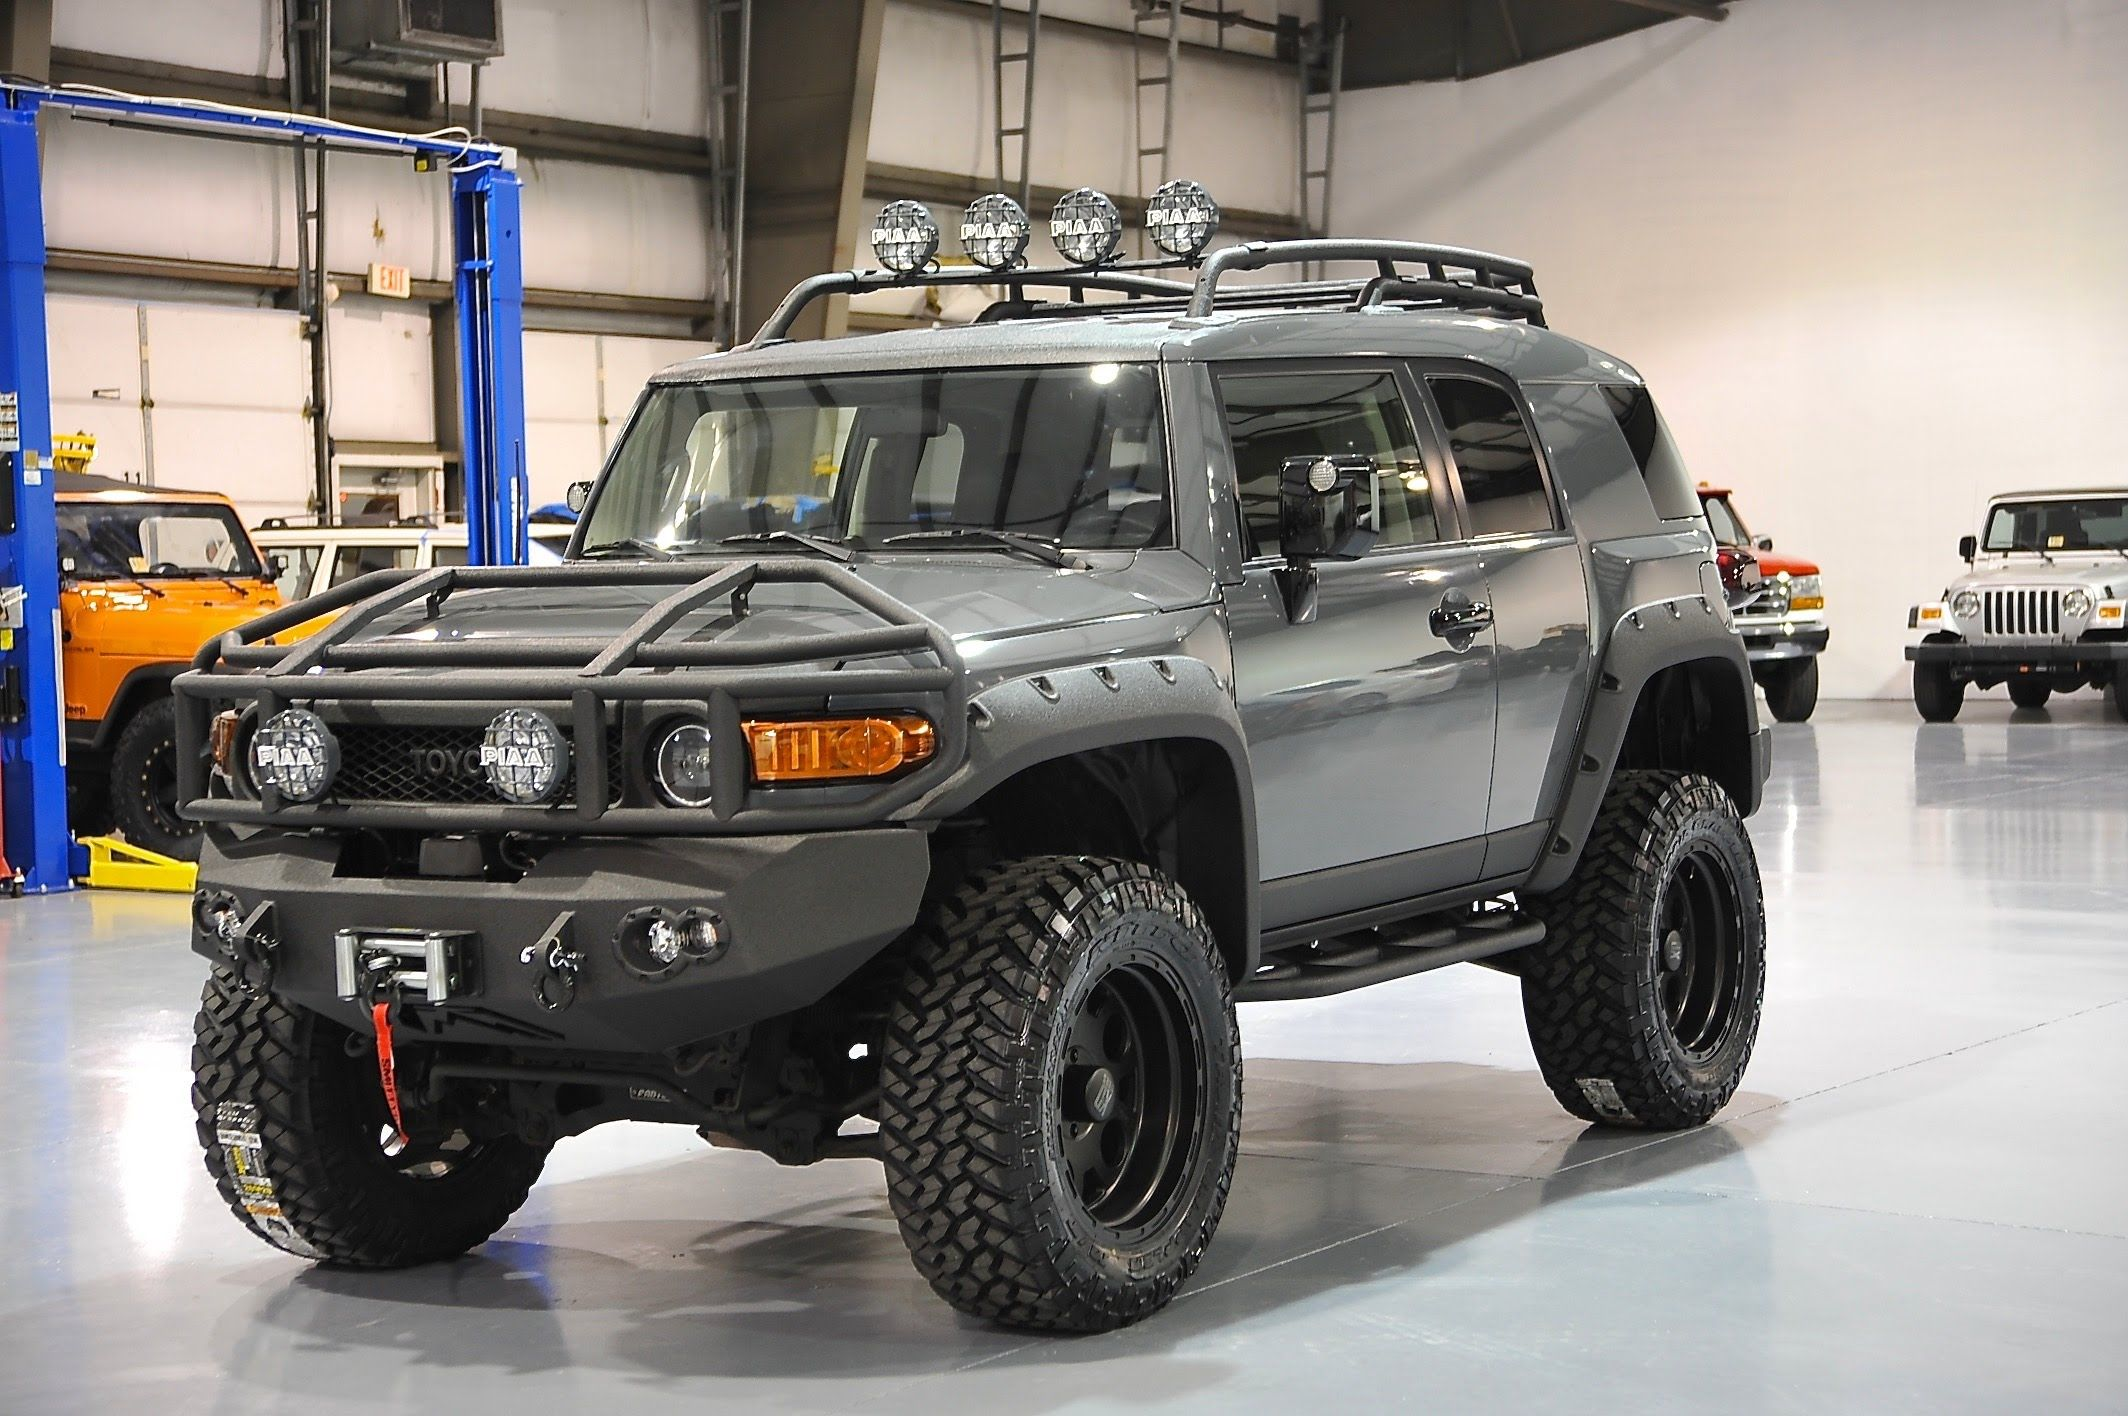 Davis autosports baddest fj cruiser on the market for sale